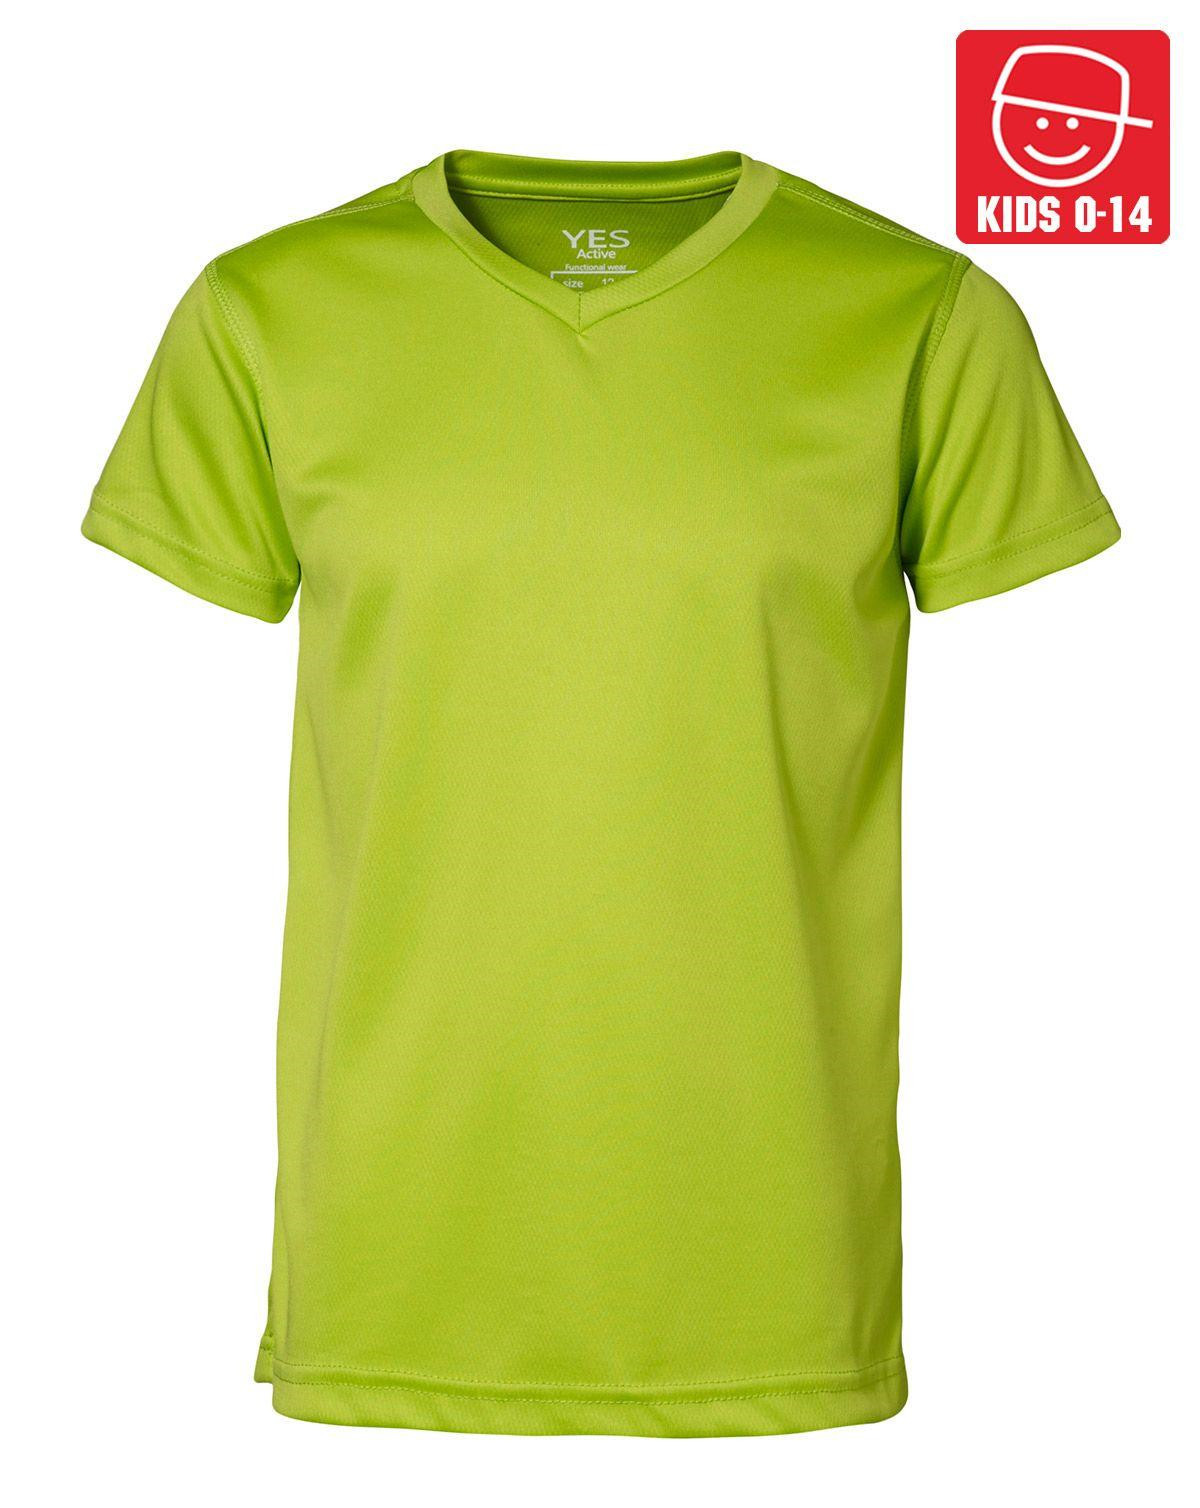 Image of   ID YES Svedtransporterende T-shirt til Børn (Lime, 158)